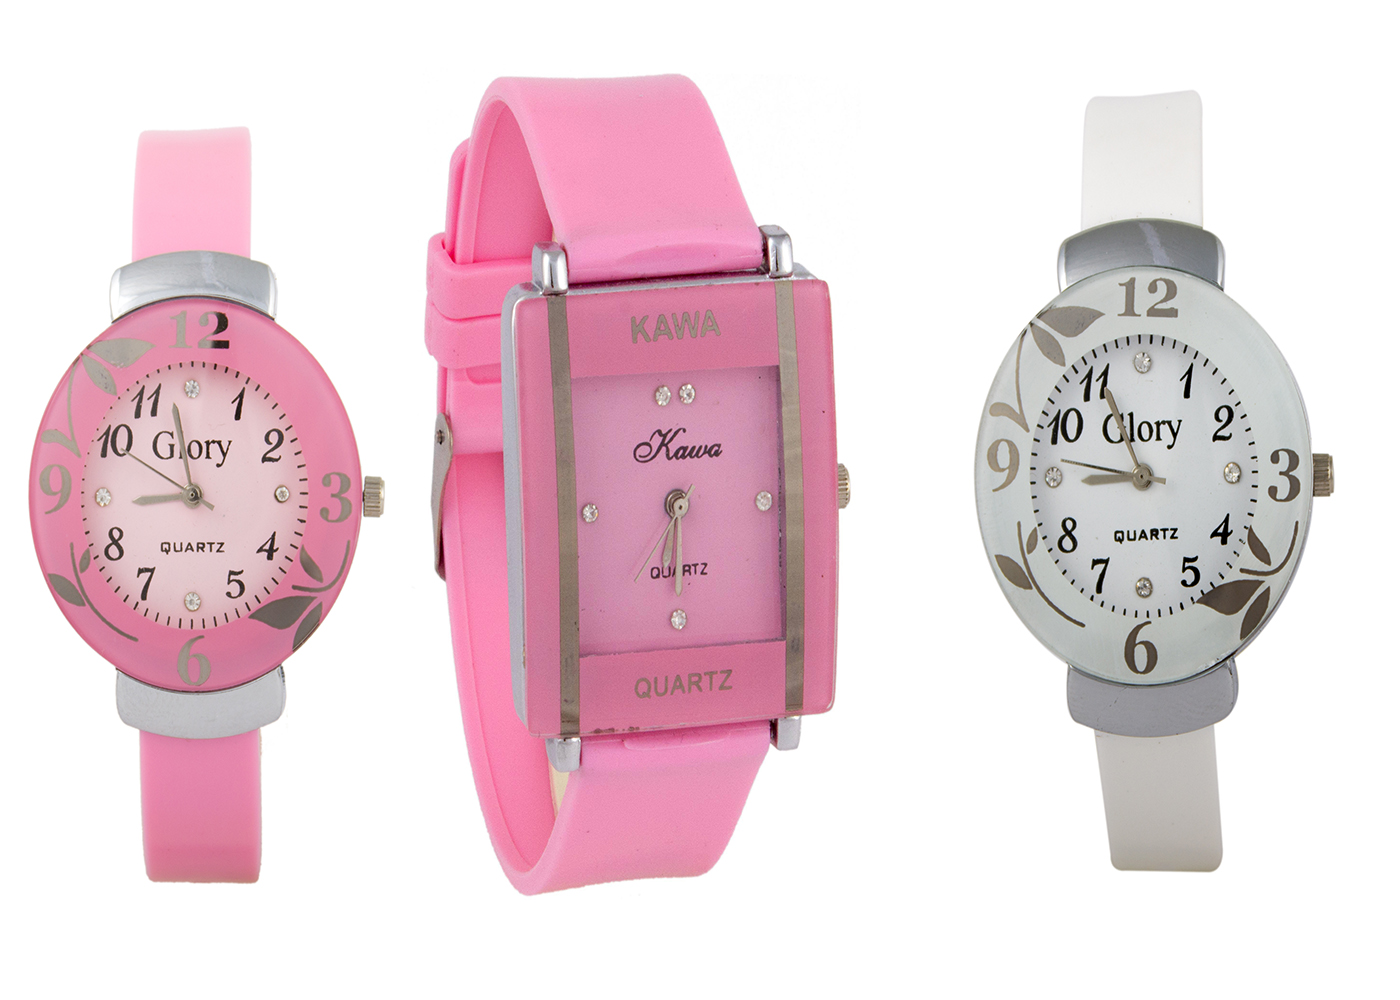 Glory Combo Of Three Watches- Pink And White Glory Pink Rectangular Dial Kawa Watch by 7Star